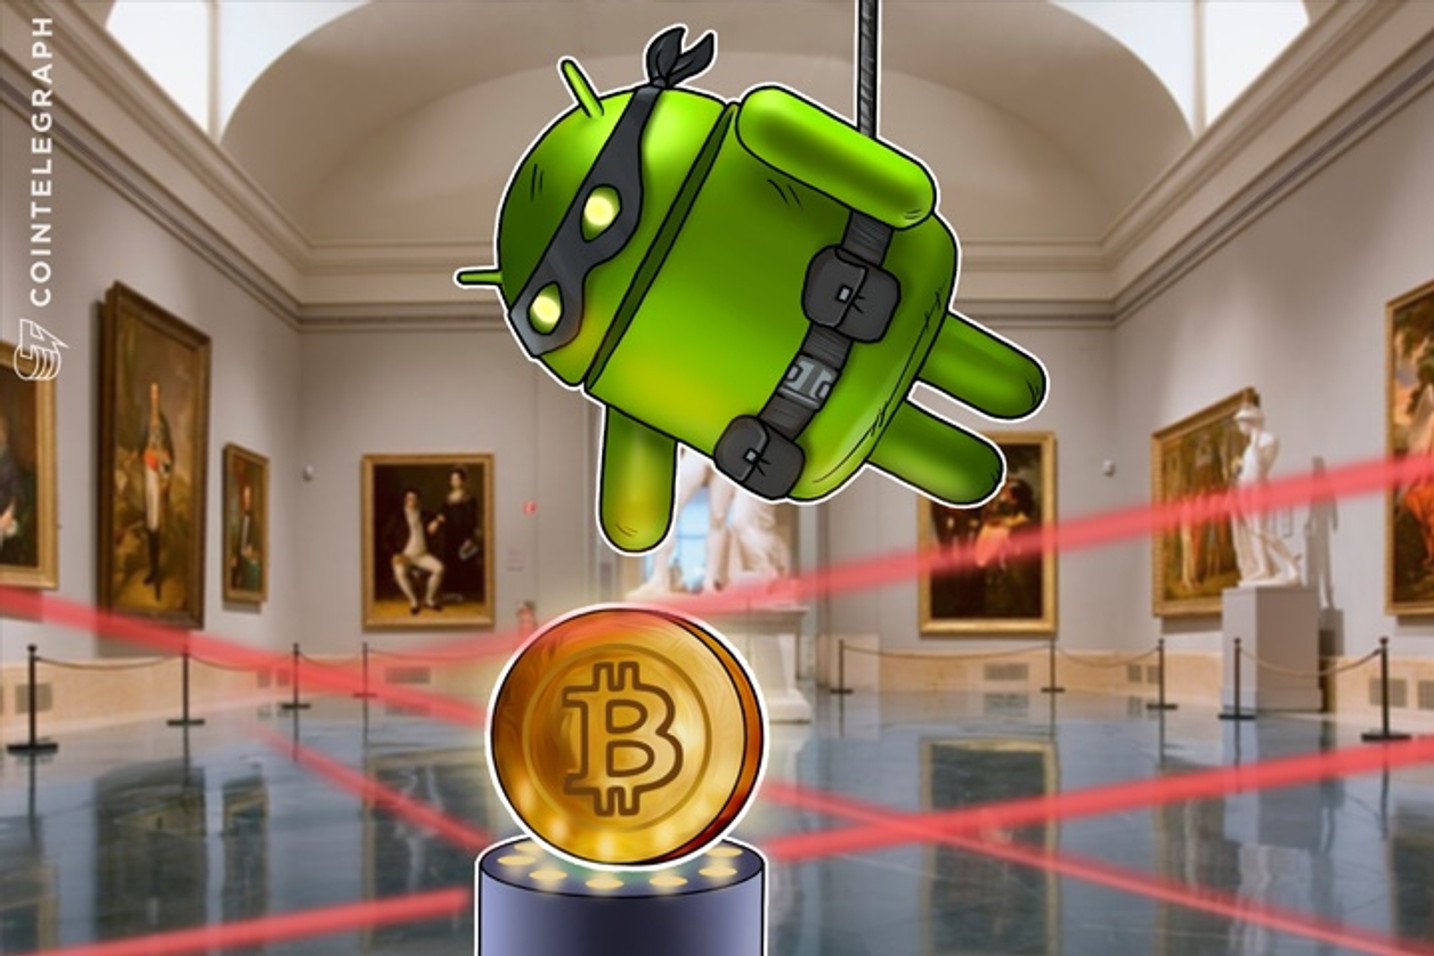 Watch Out! Certain Android Mobile Devices Can Steal Your Bitcoin